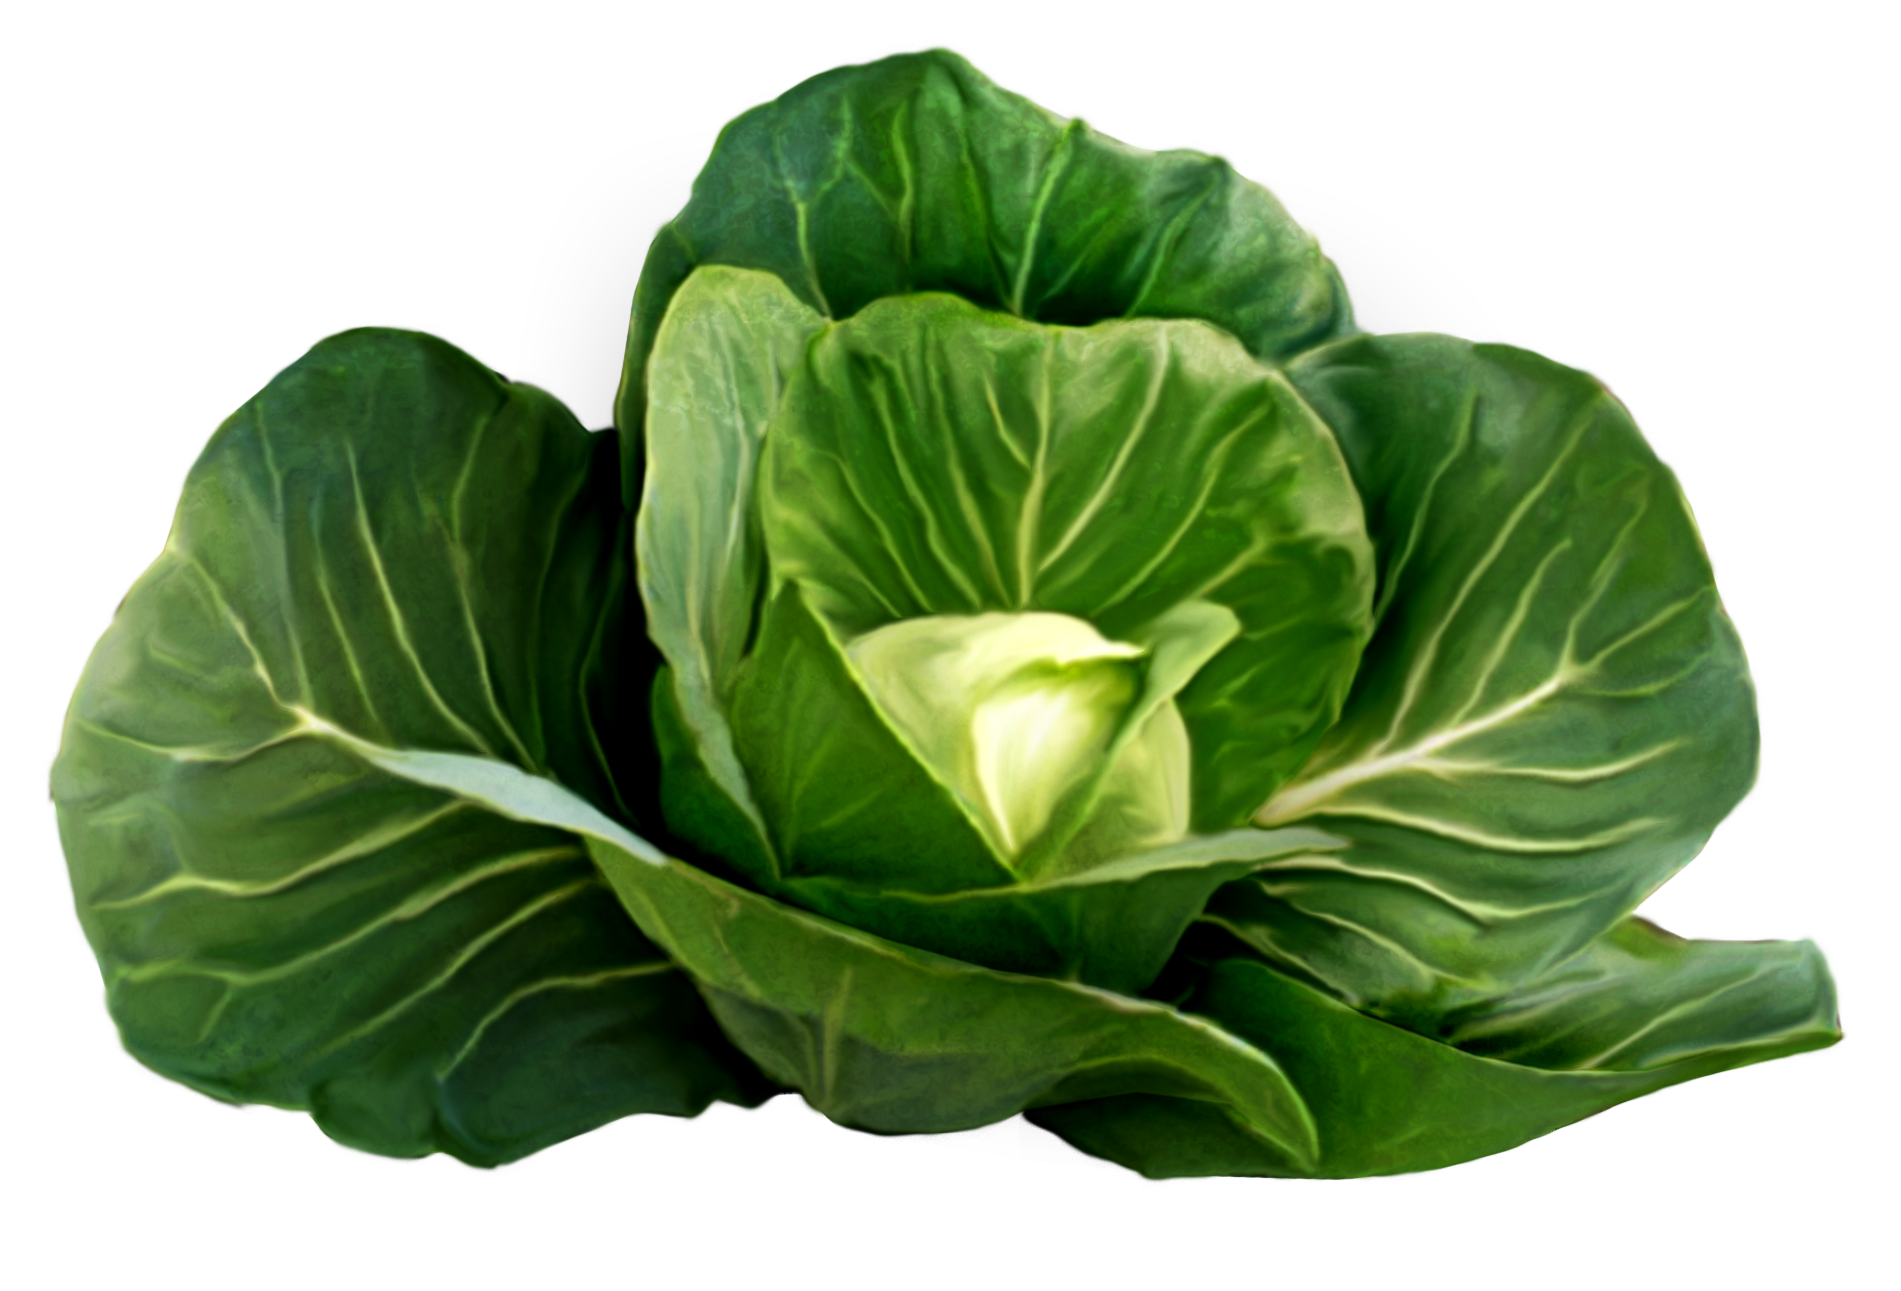 Cabbage_Picture_Clipart.png?m=1399672800.